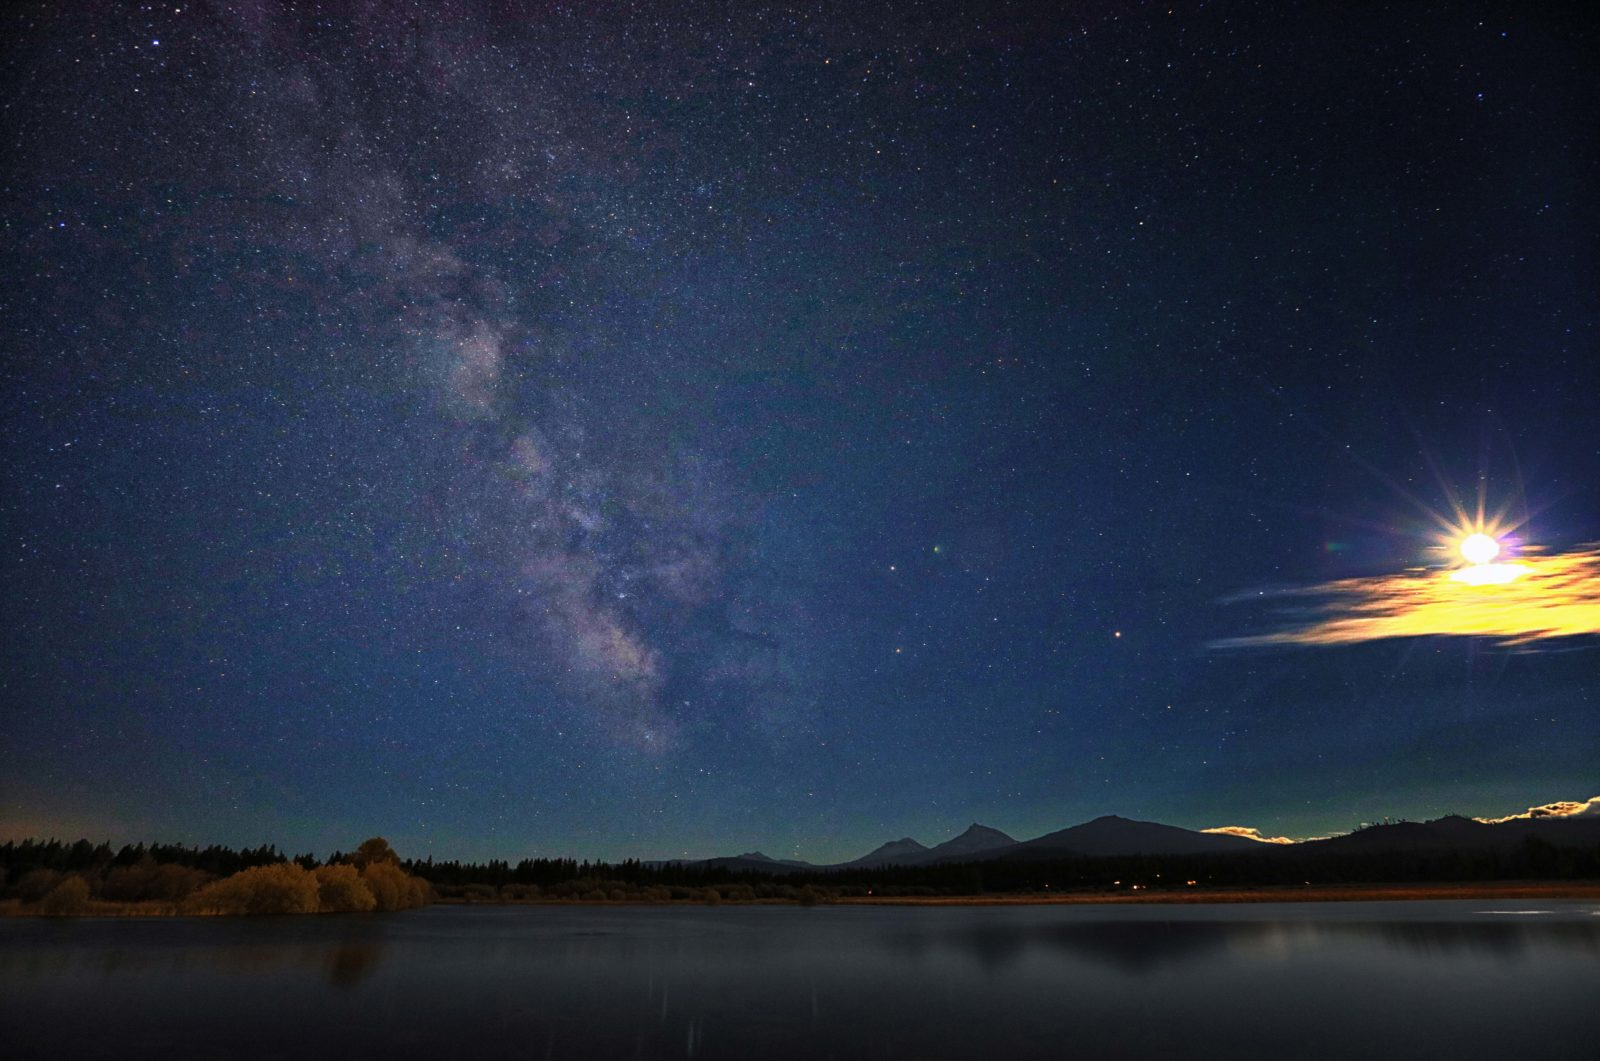 Moon and Milky Way